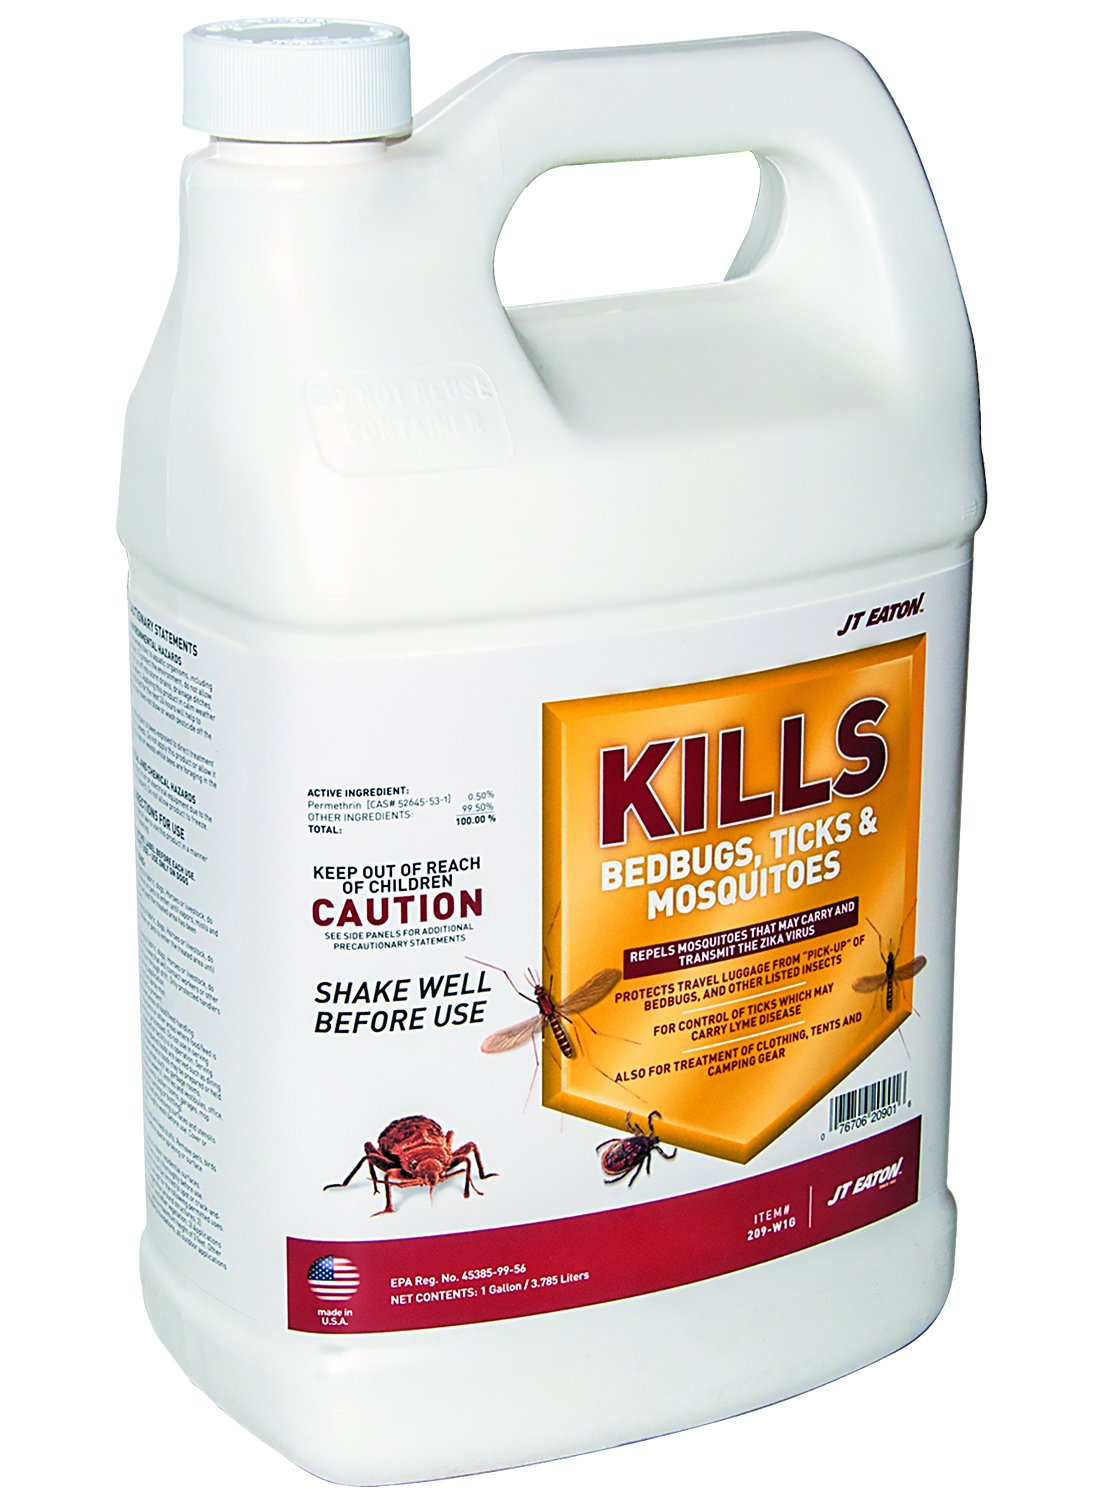 J T Eaton 209-W1G Kills Bedbugs, Ticks and Mosquitoes Water Based Spray with Sprayer Attachment, 1-Gallon